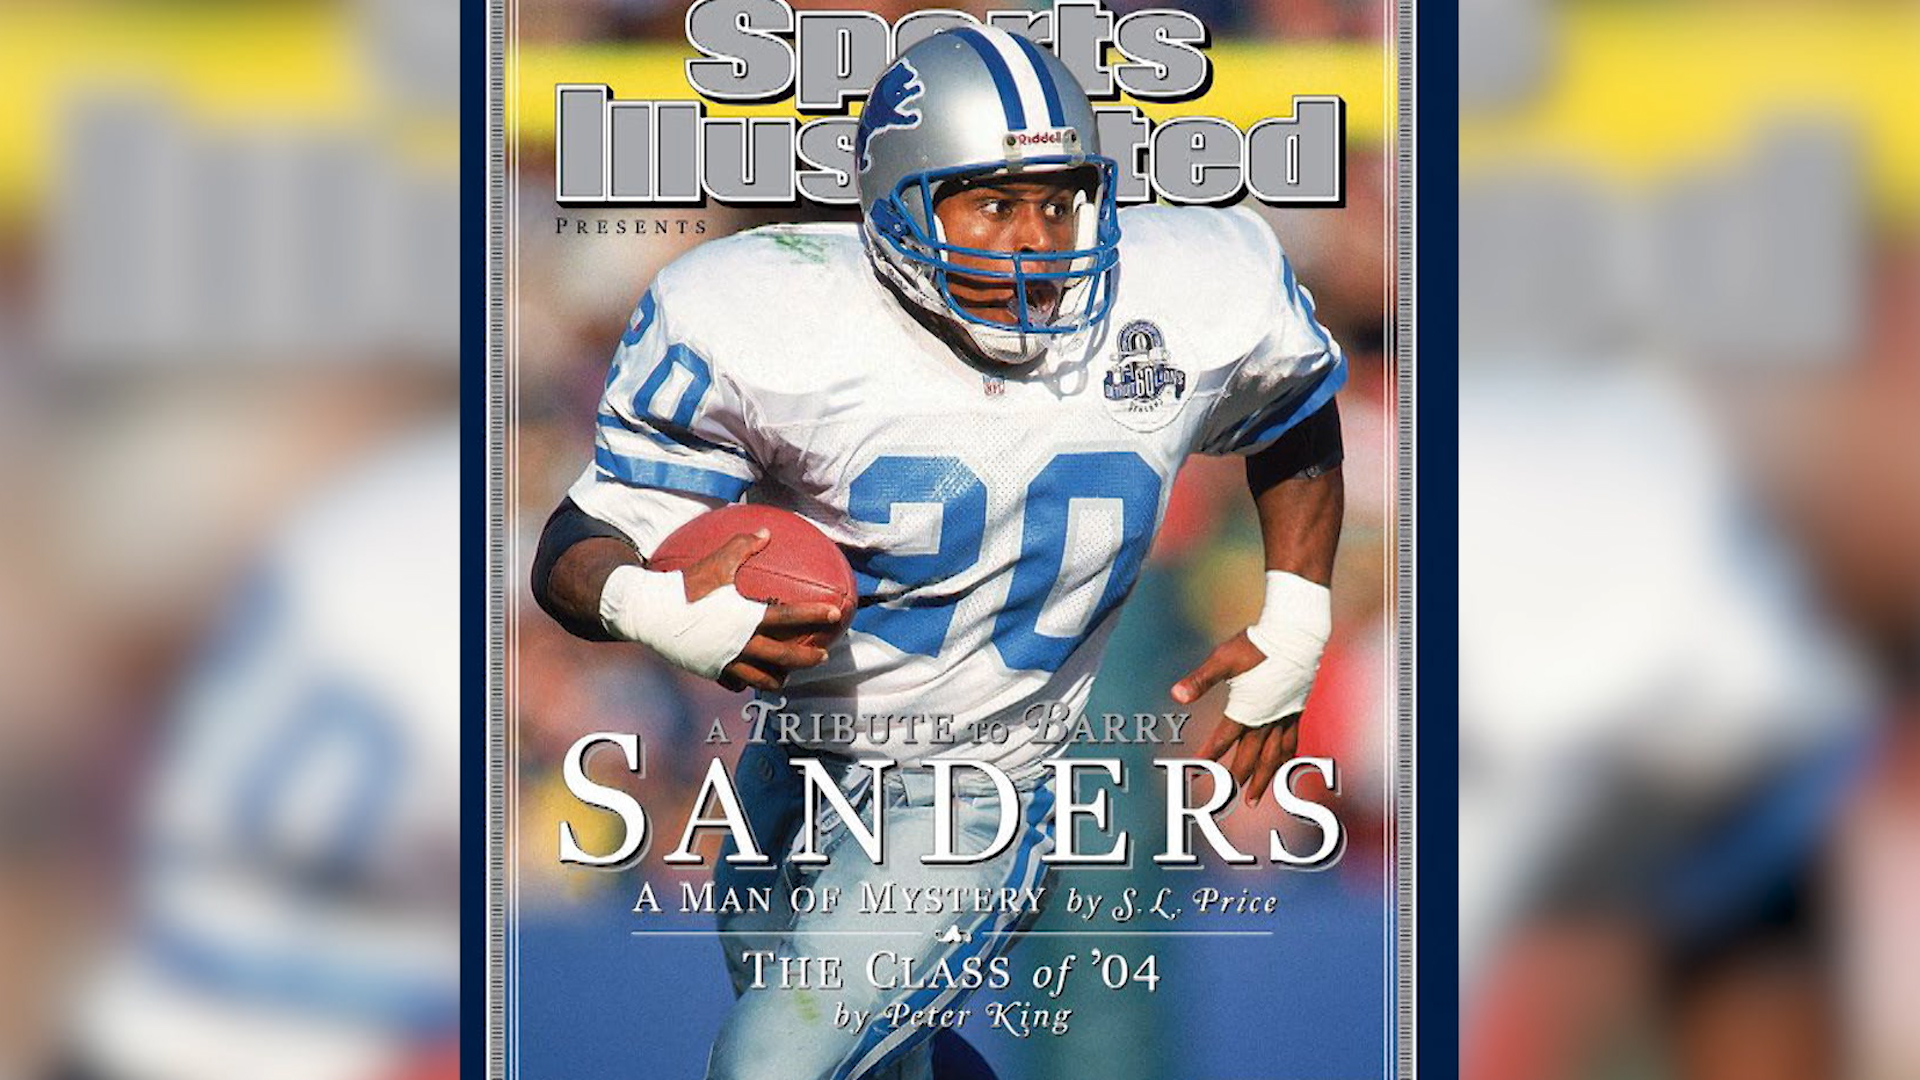 Barry Sanders Reflects On Retirement And Hall Of Fame